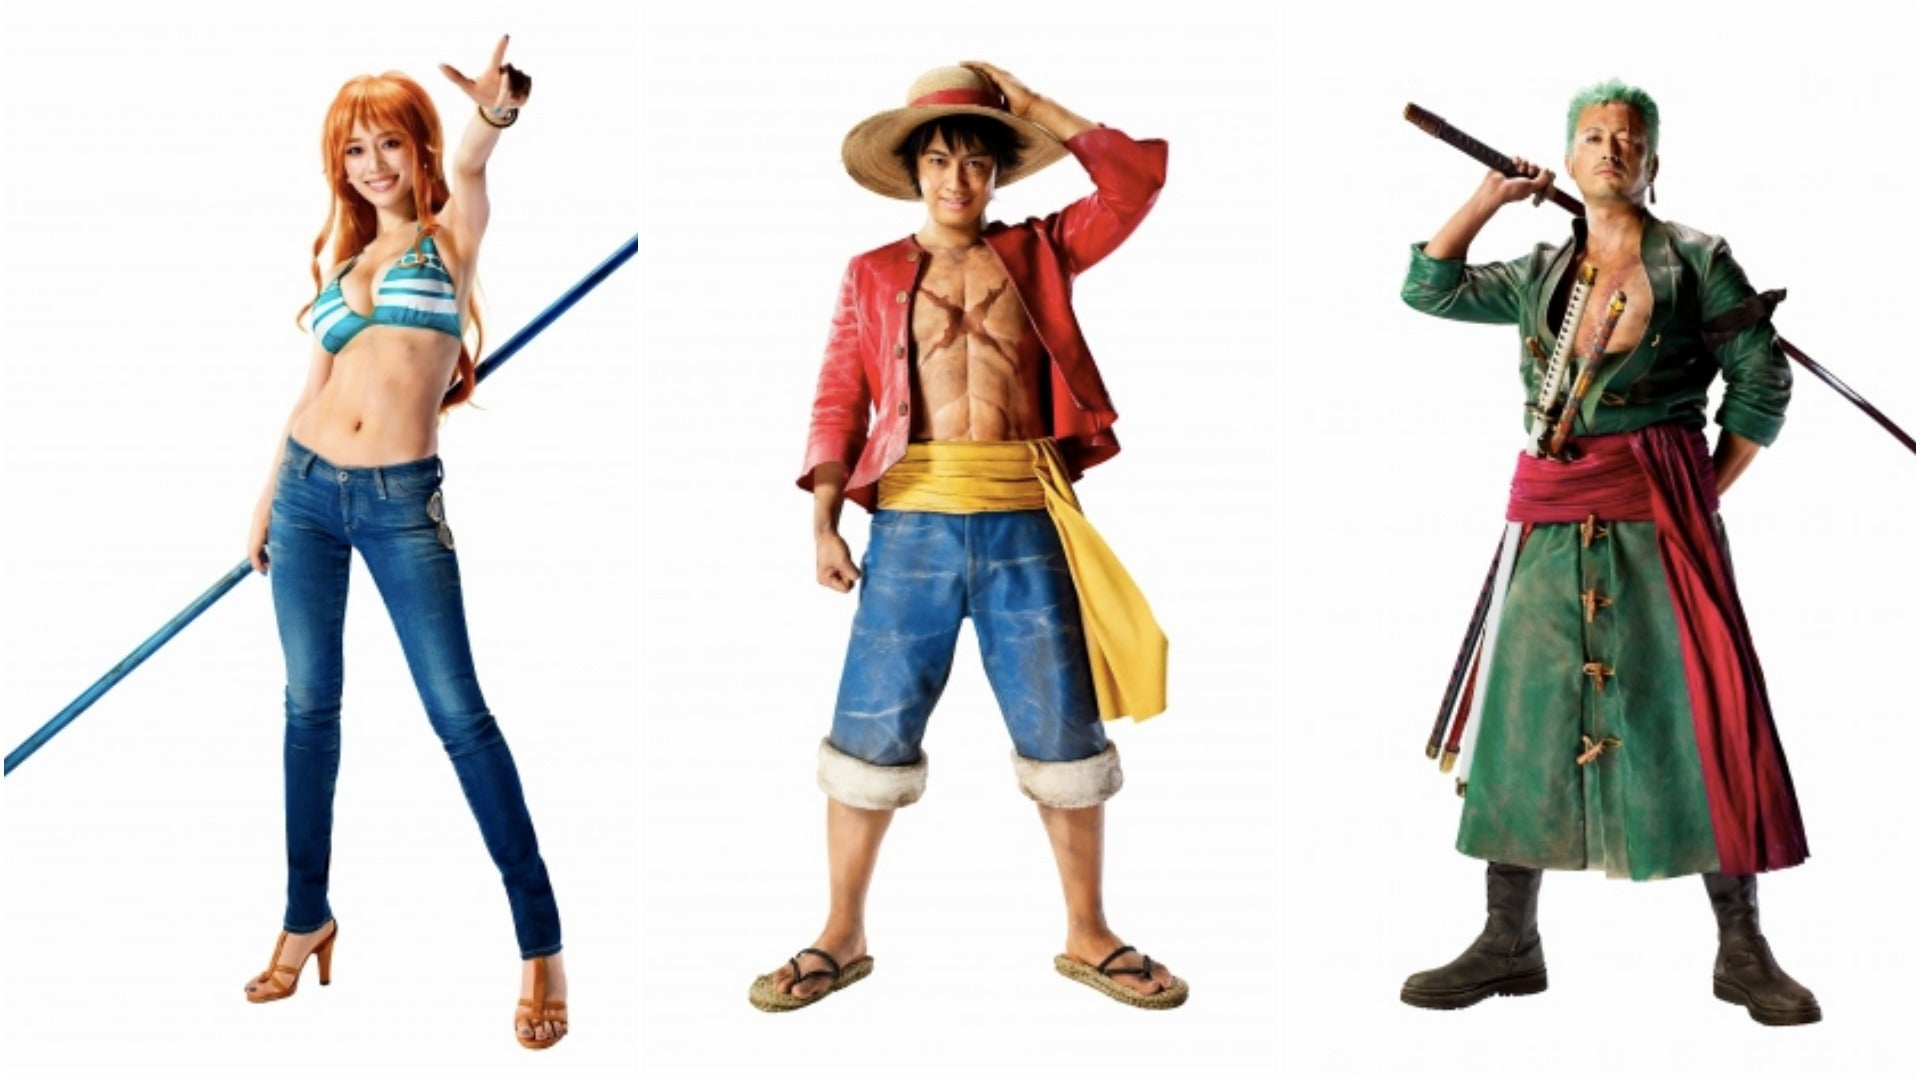 A Live-Action One Piece Movie Might Look Like This